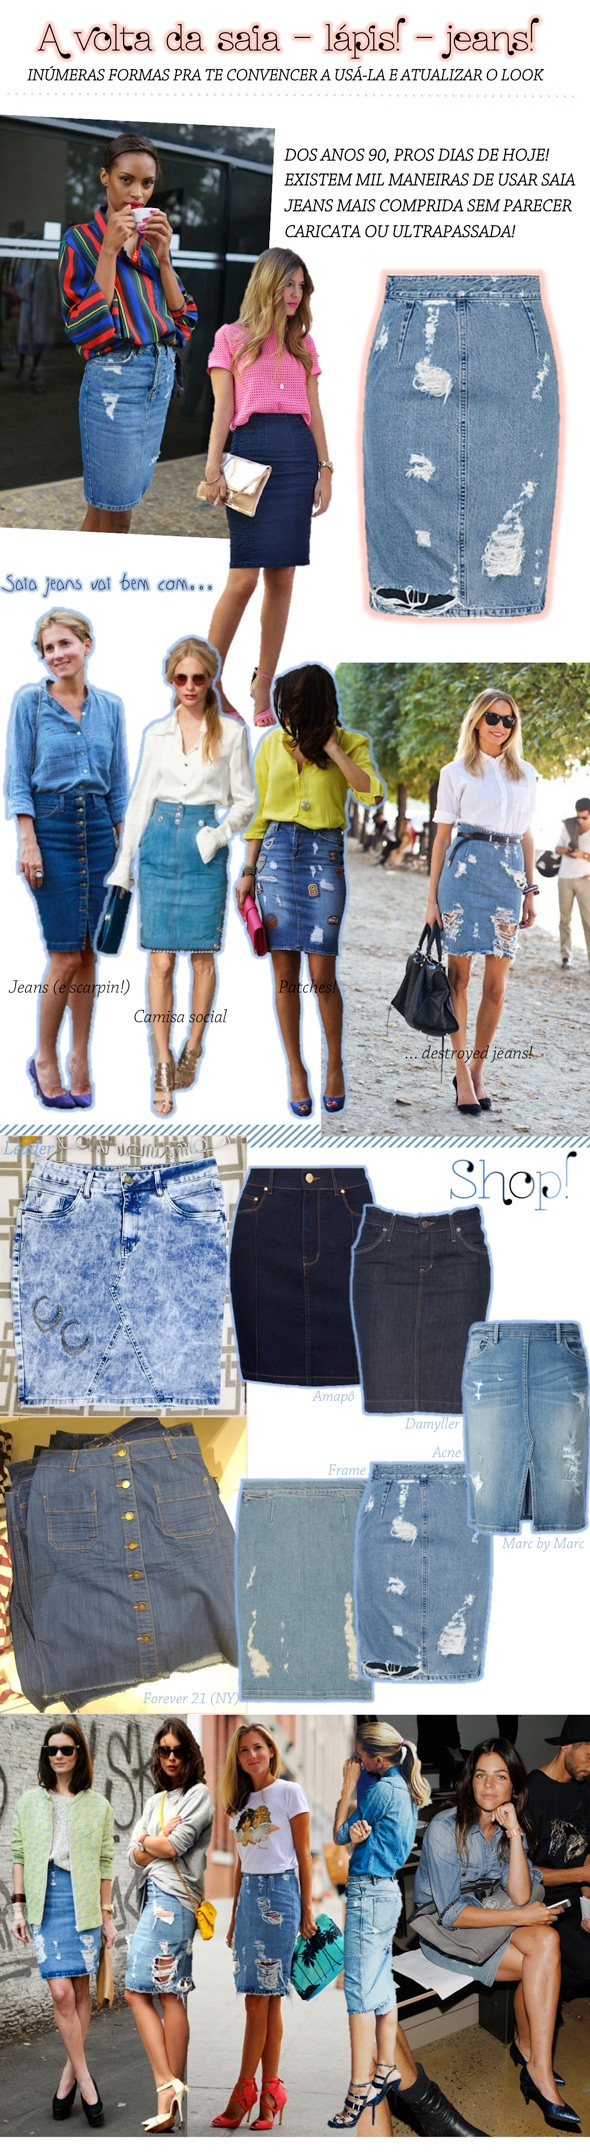 PENCIL-DENIM-SKIRT-SAIA-LAPIS-JEANS